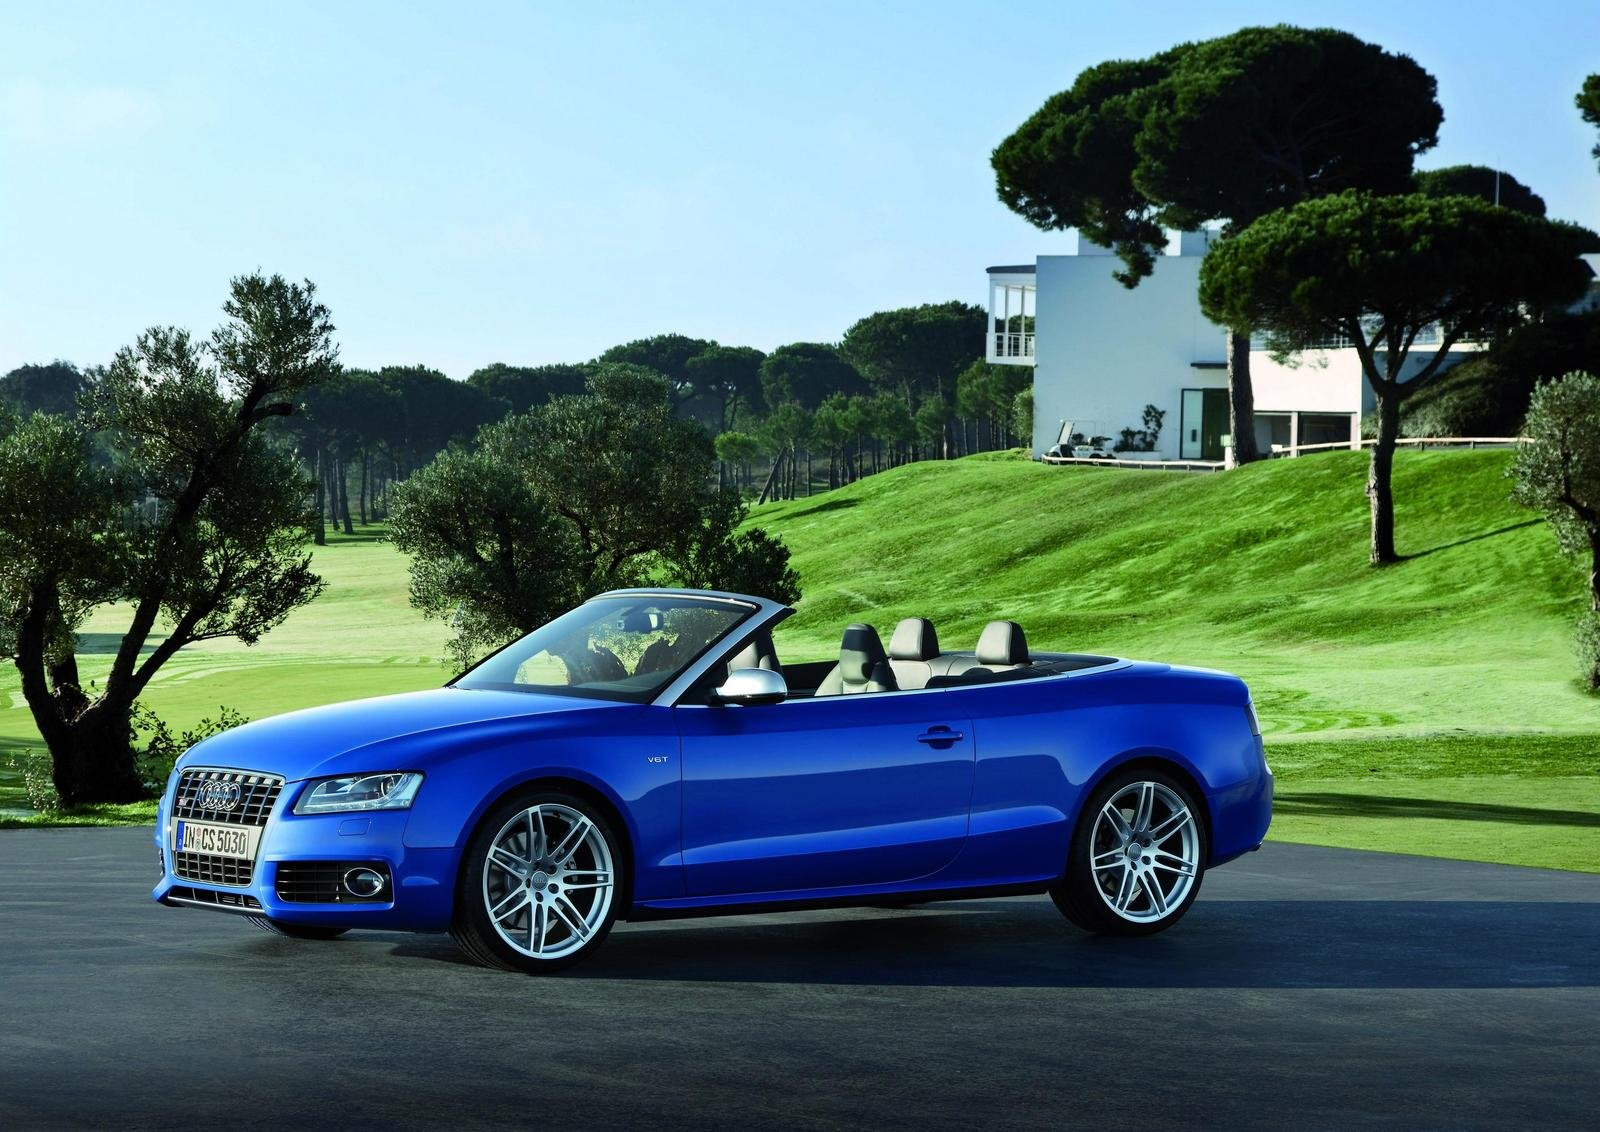 2009 audi a5 s5 convertible picture 287402 car review. Black Bedroom Furniture Sets. Home Design Ideas